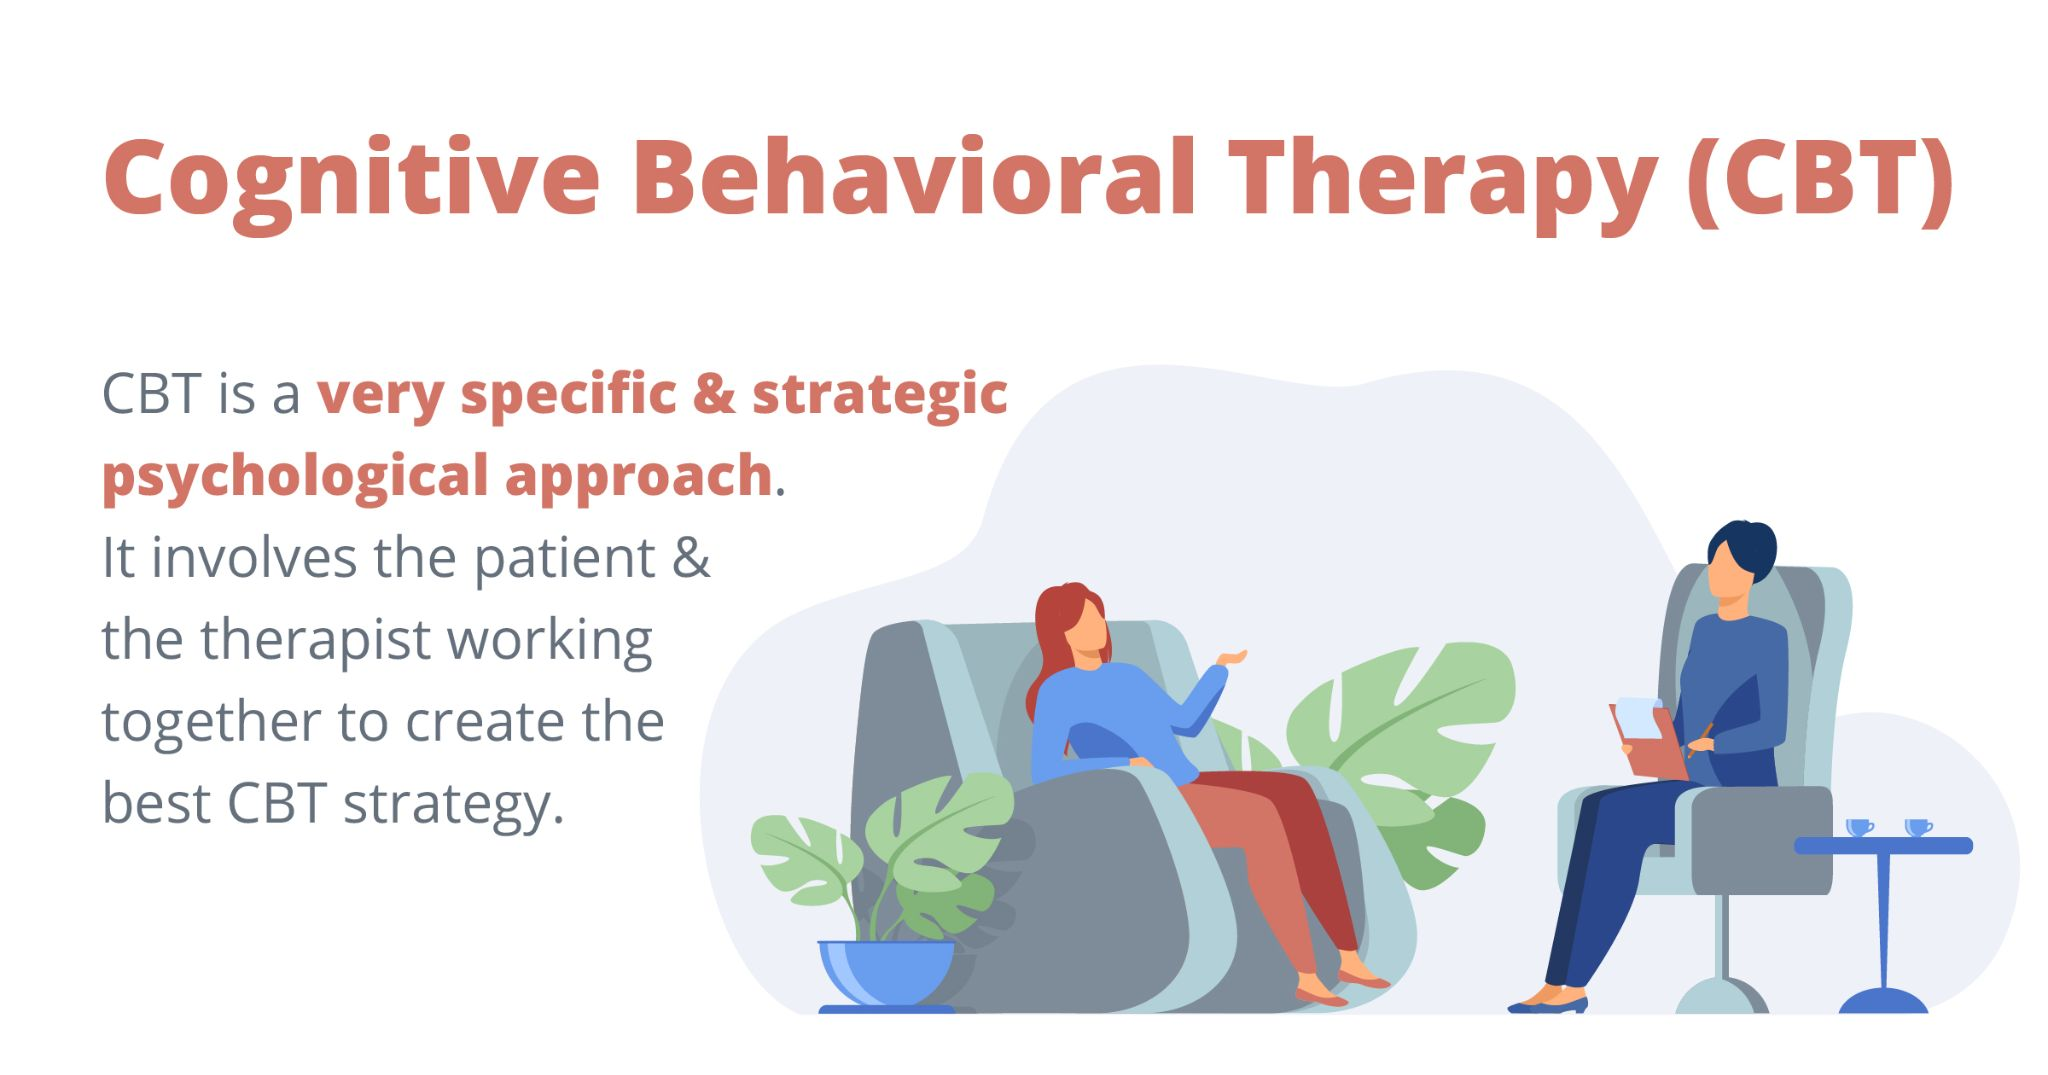 Cognitive behavioral therapy (CBT) is a very specific and strategic psychological approach. It involves the patient & the therapist wowking together to create the best CBT strategy.